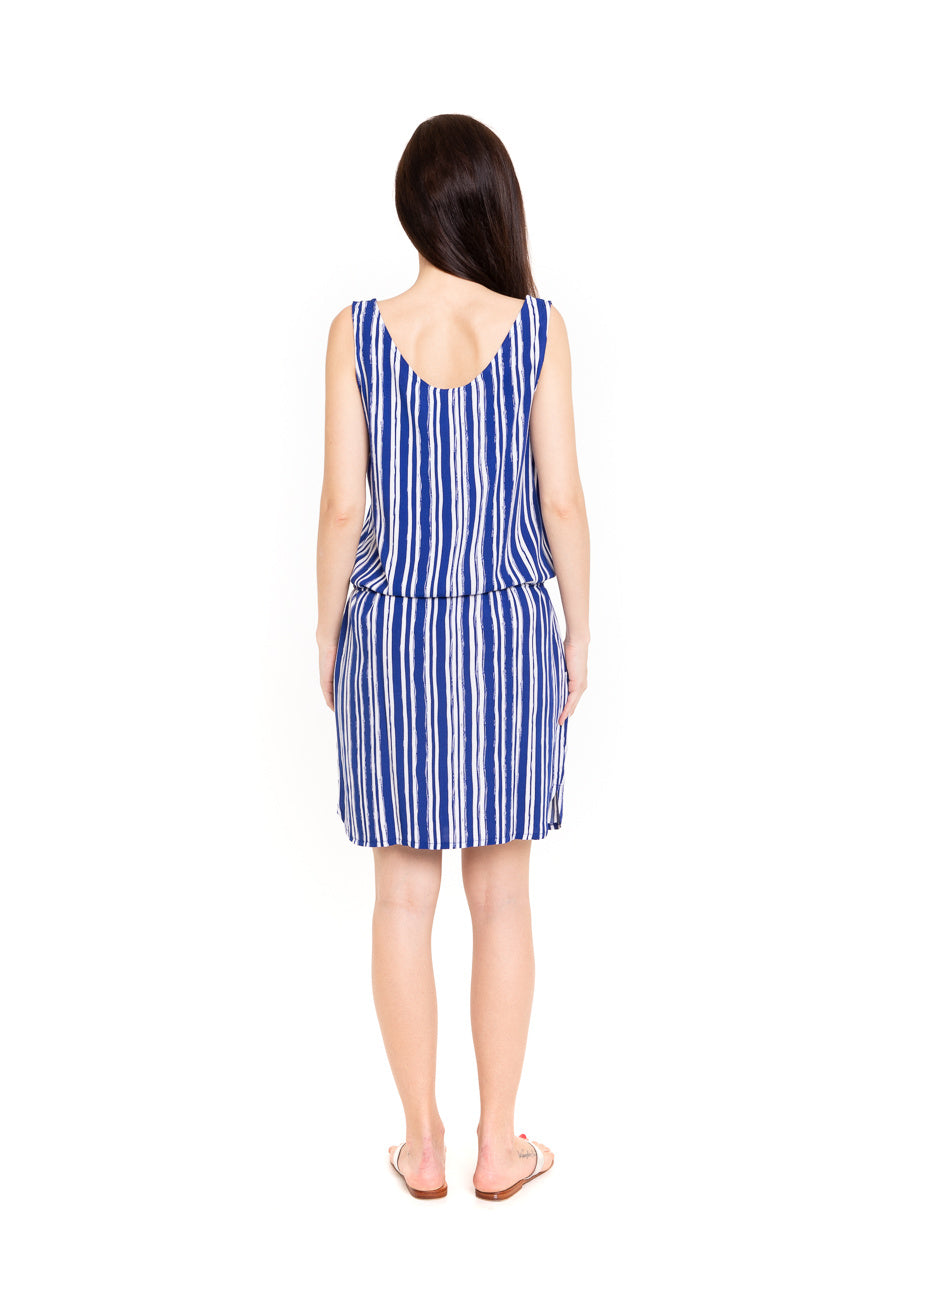 Dress Ella - Royal Stripe